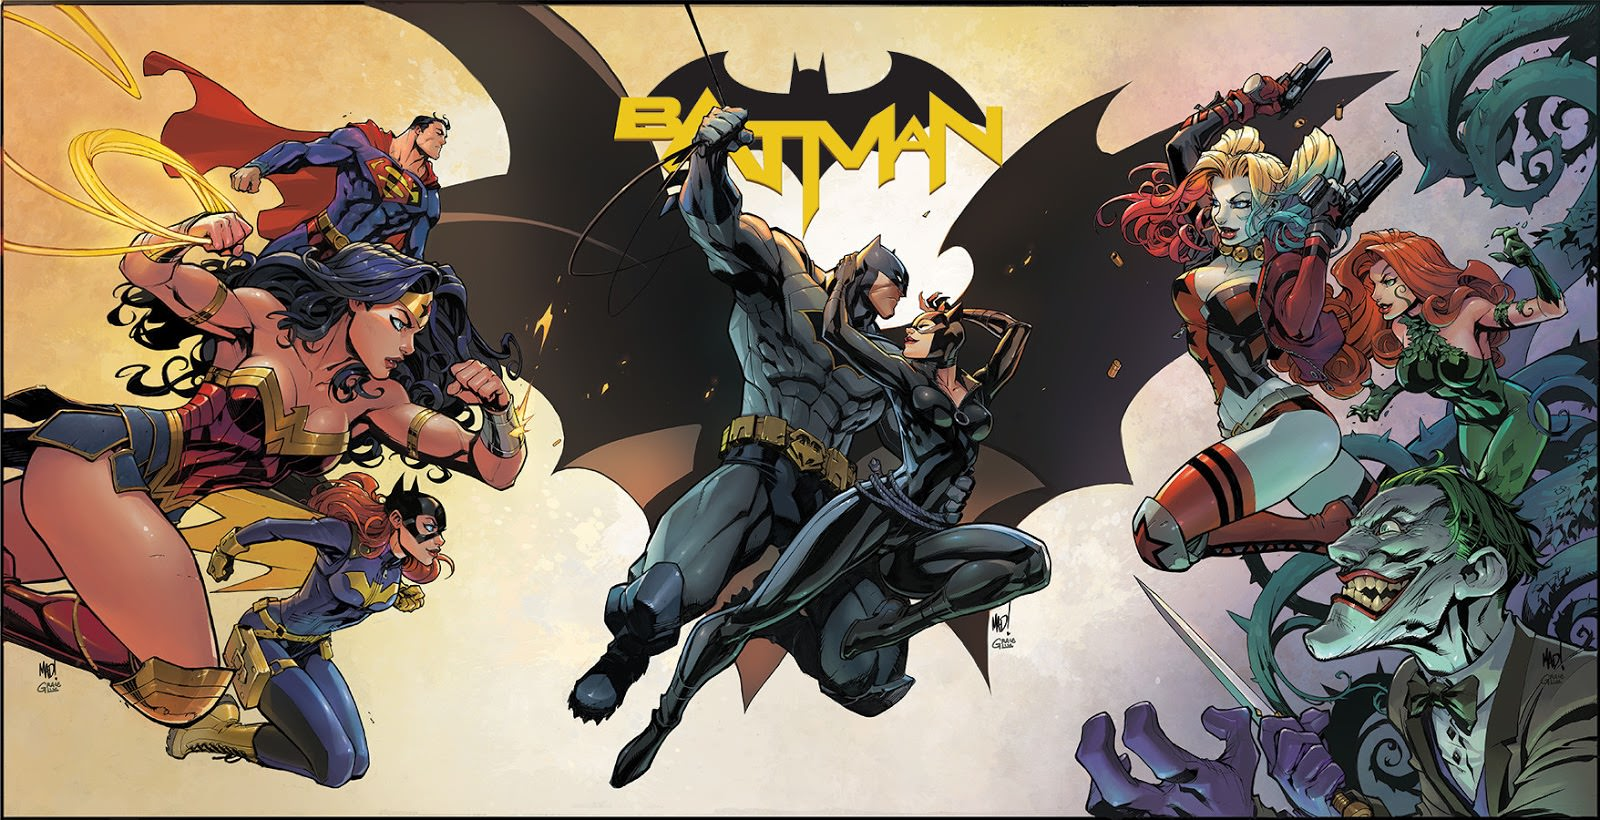 Batman #50, couverture alternative de Frank Cho